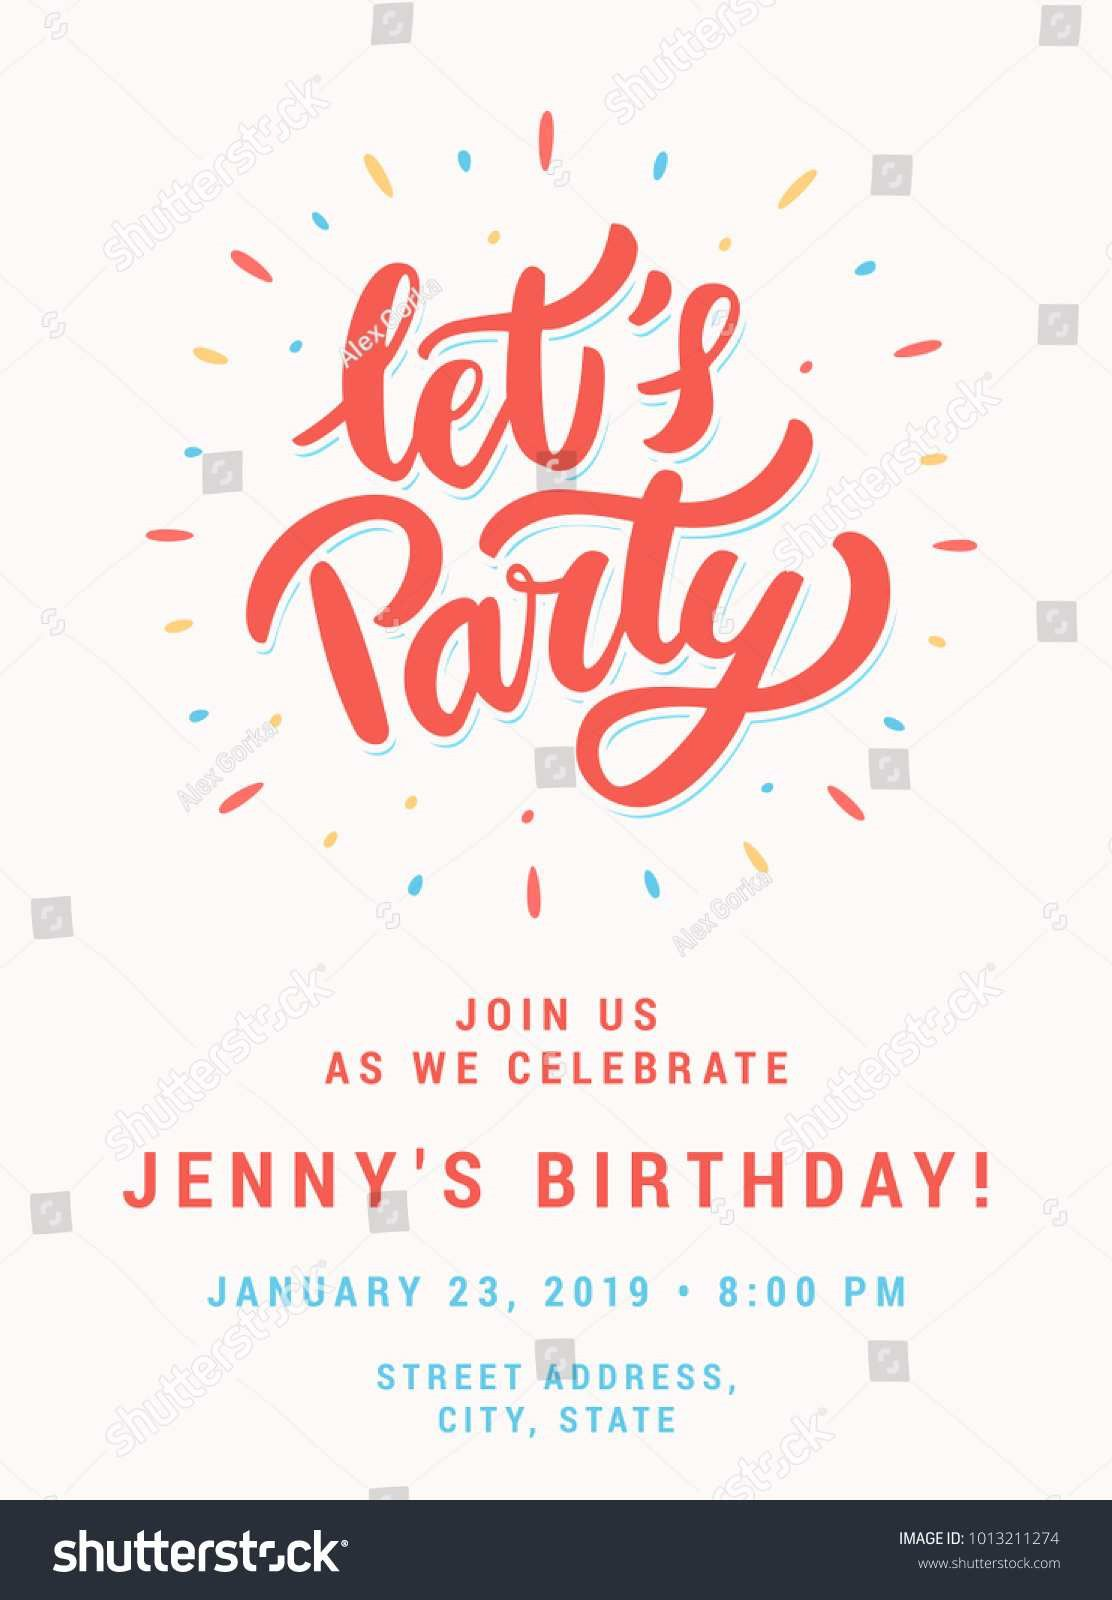 003 Wonderful Birthday Party Invitation Template Word Free Example  Download InviteFull